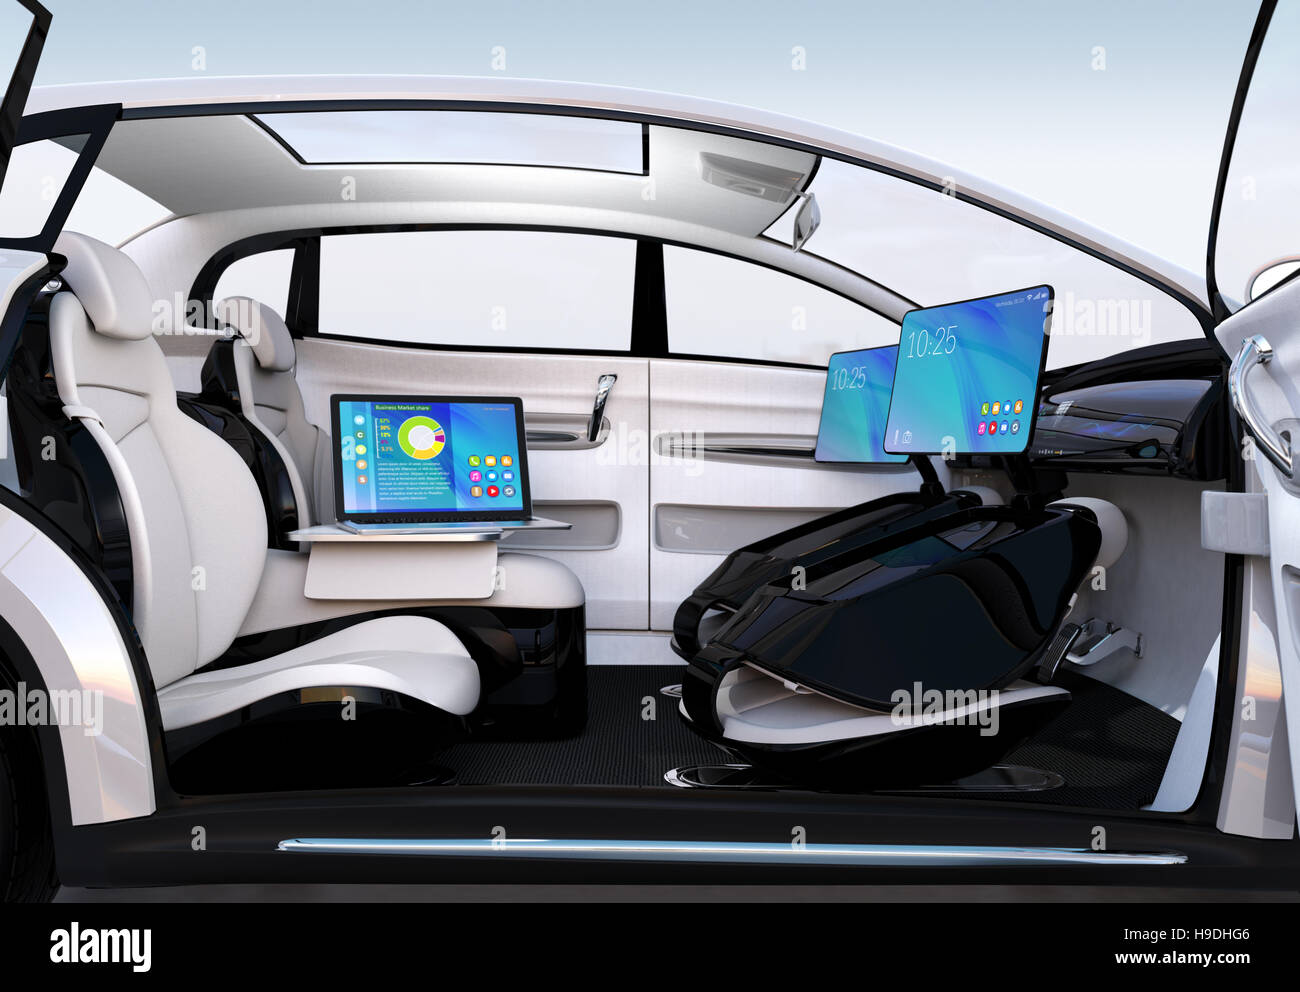 autonomous car interior concept laptop stock photos autonomous car interior concept laptop. Black Bedroom Furniture Sets. Home Design Ideas